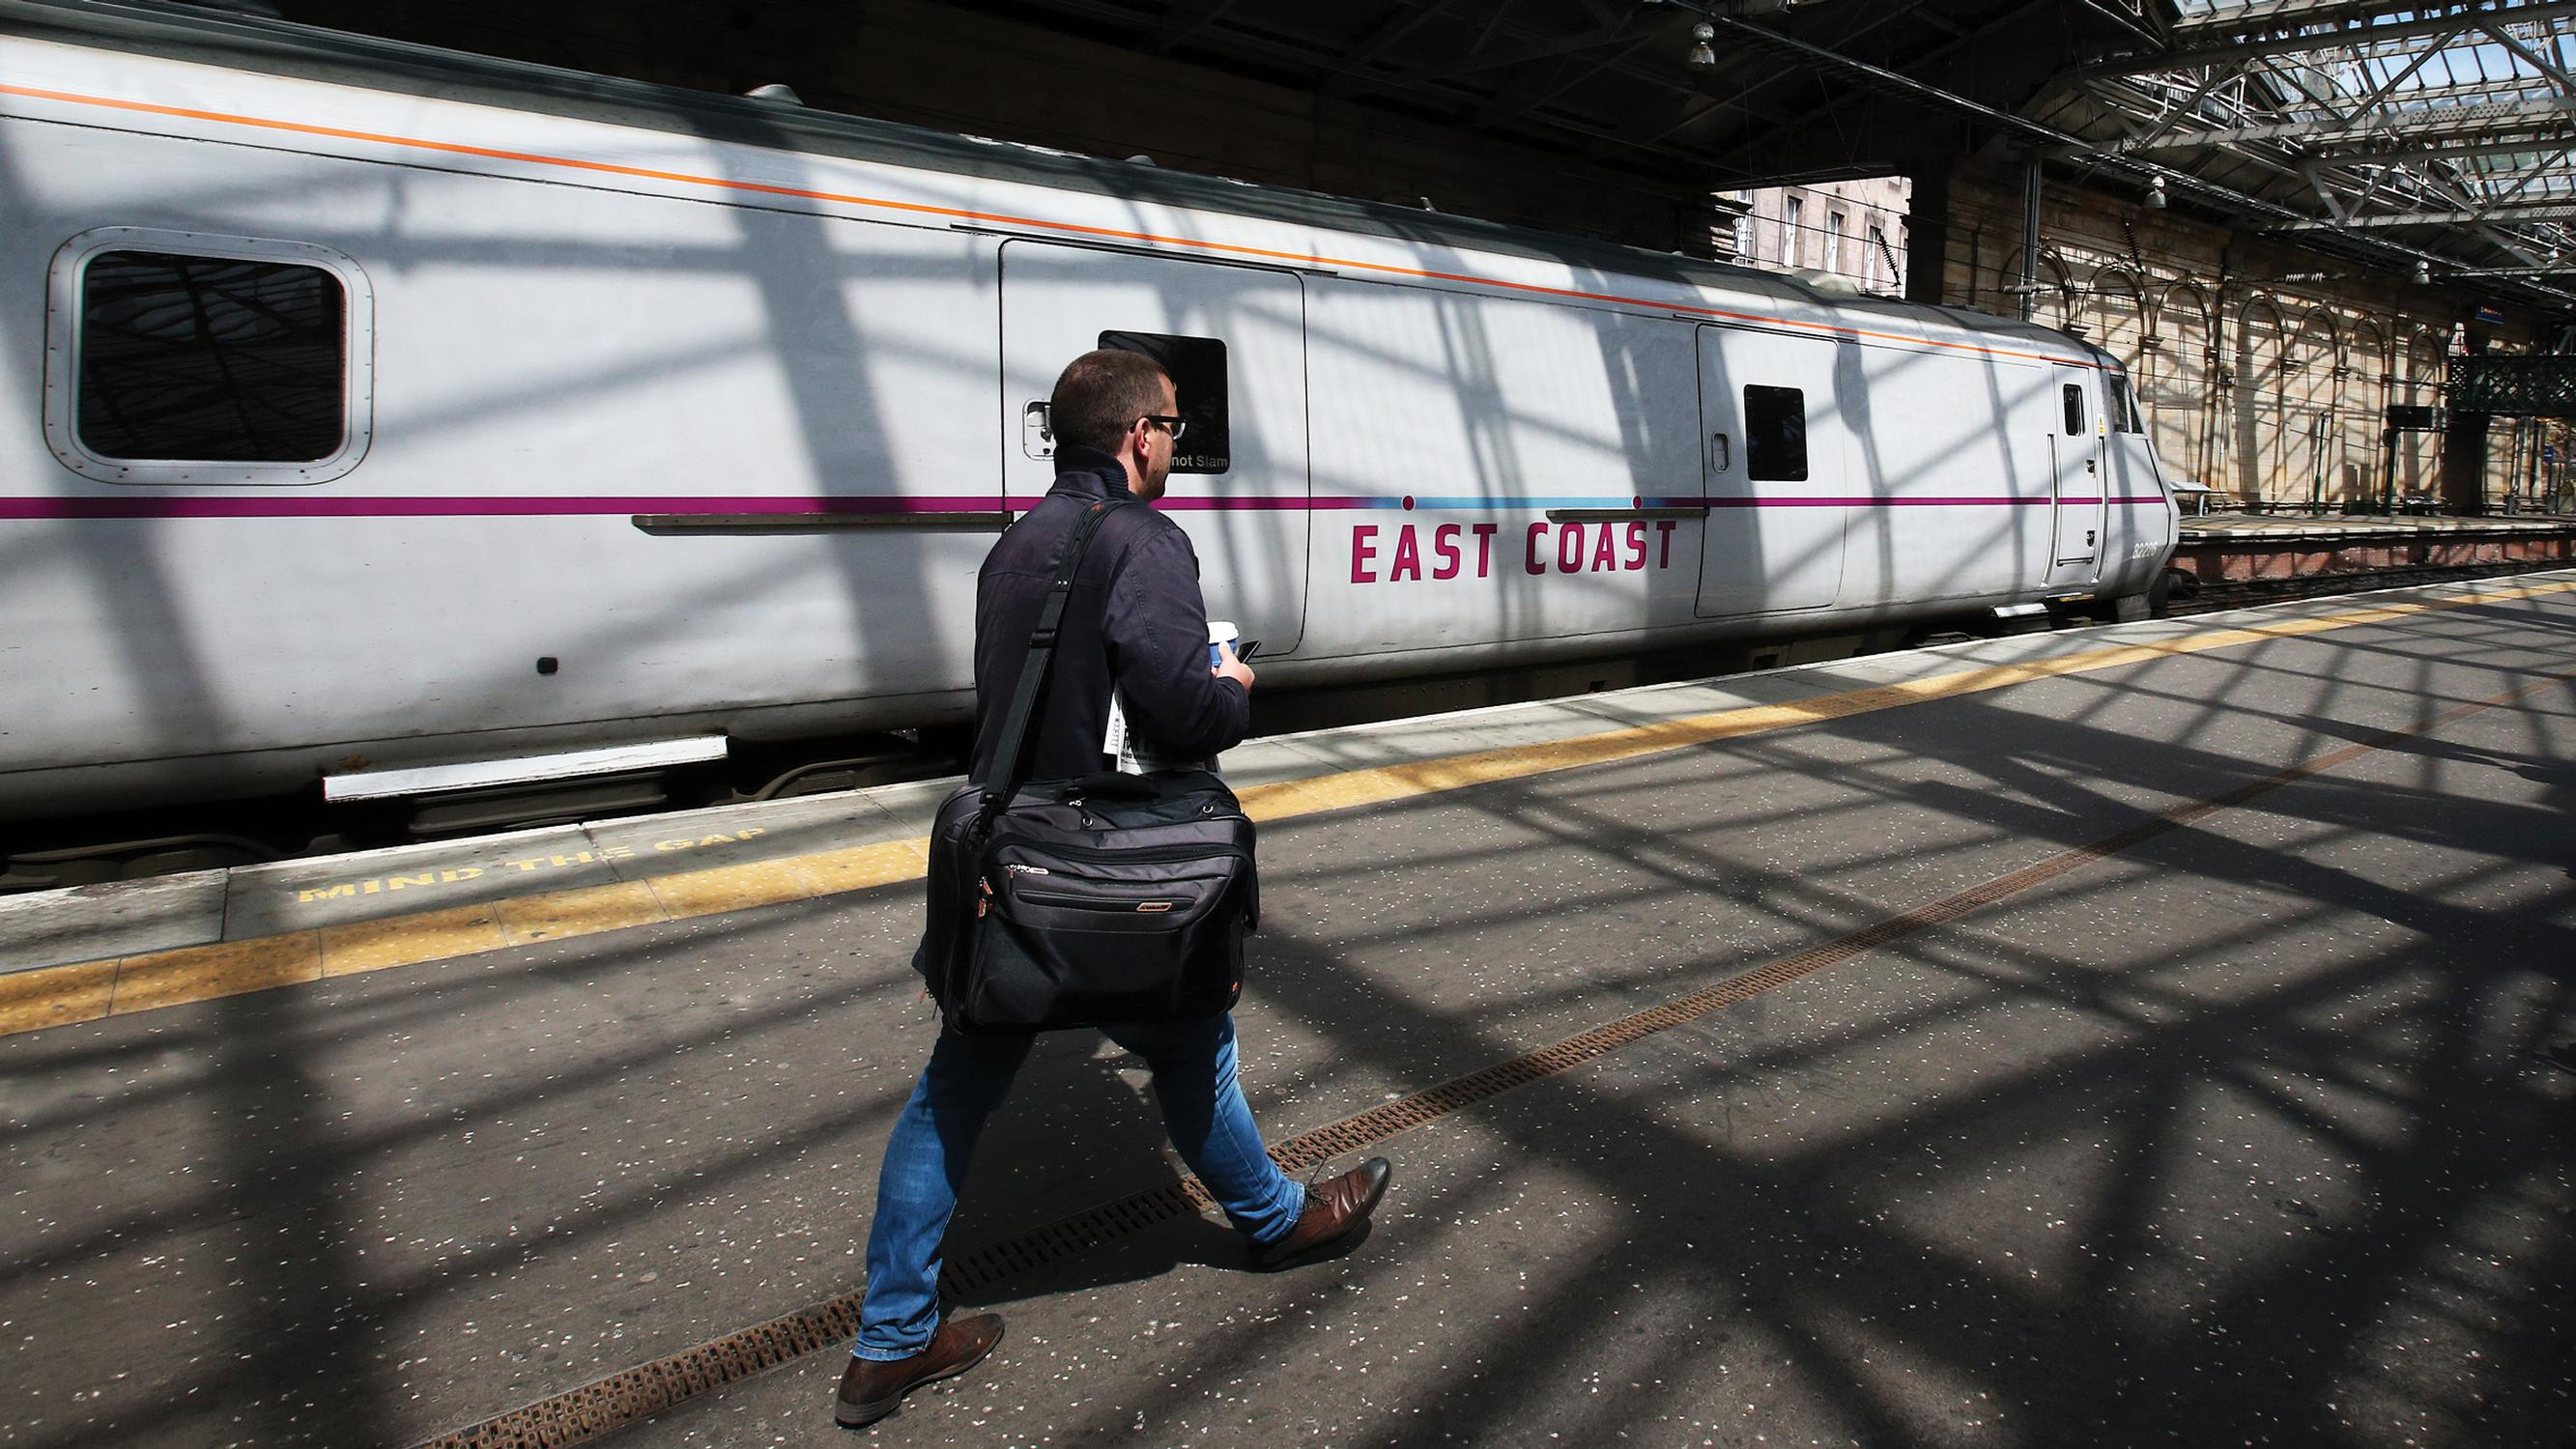 The news that the East Coast main line rail franchise was to be temporarily taken back into public ownership reignited the long-running media debate on whether the rail network would work more effectively in public or private hands